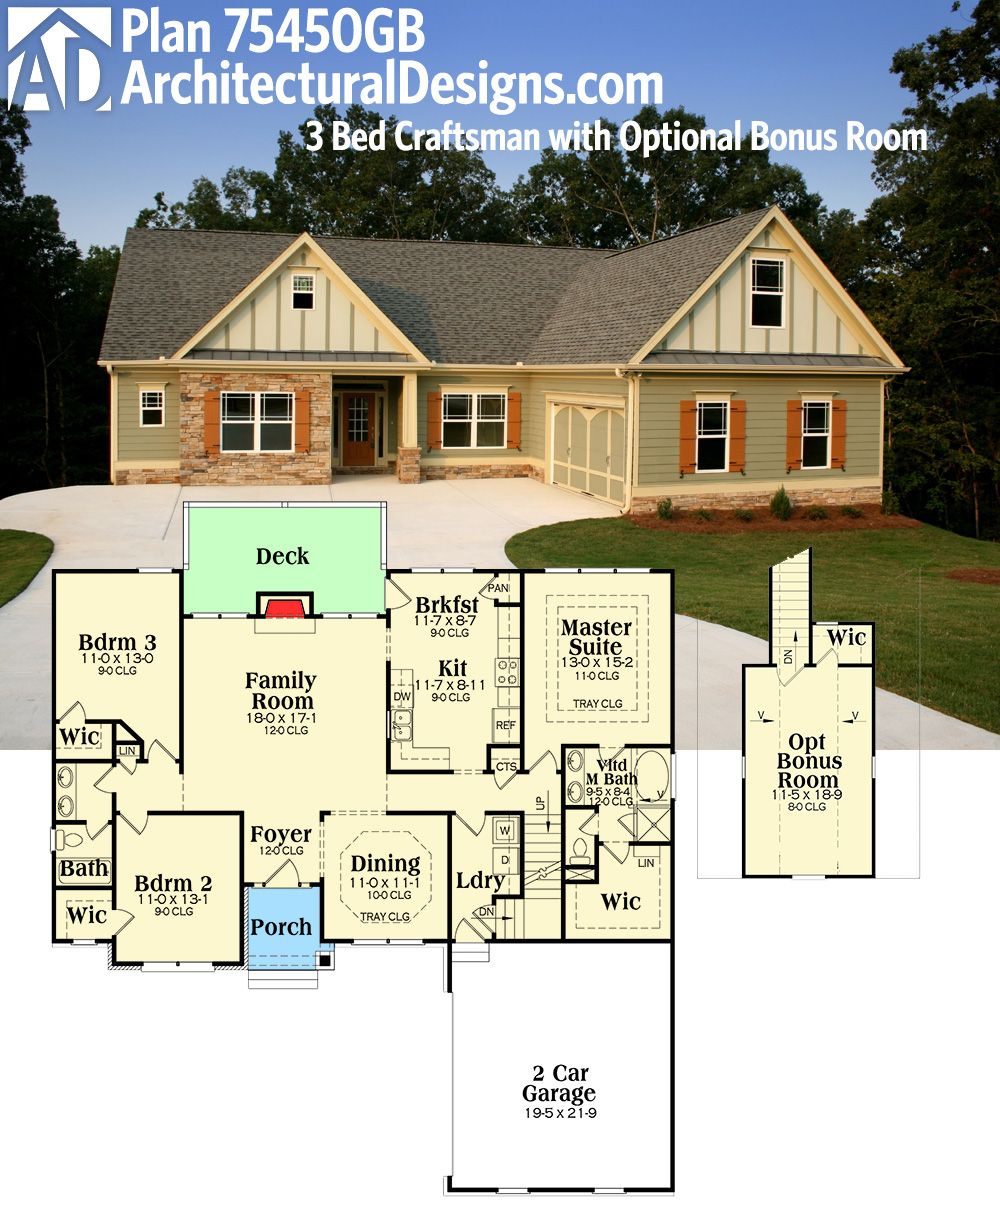 Plan 75450gb 3 bed craftsman with optional bonus room for House plans with bonus room one story